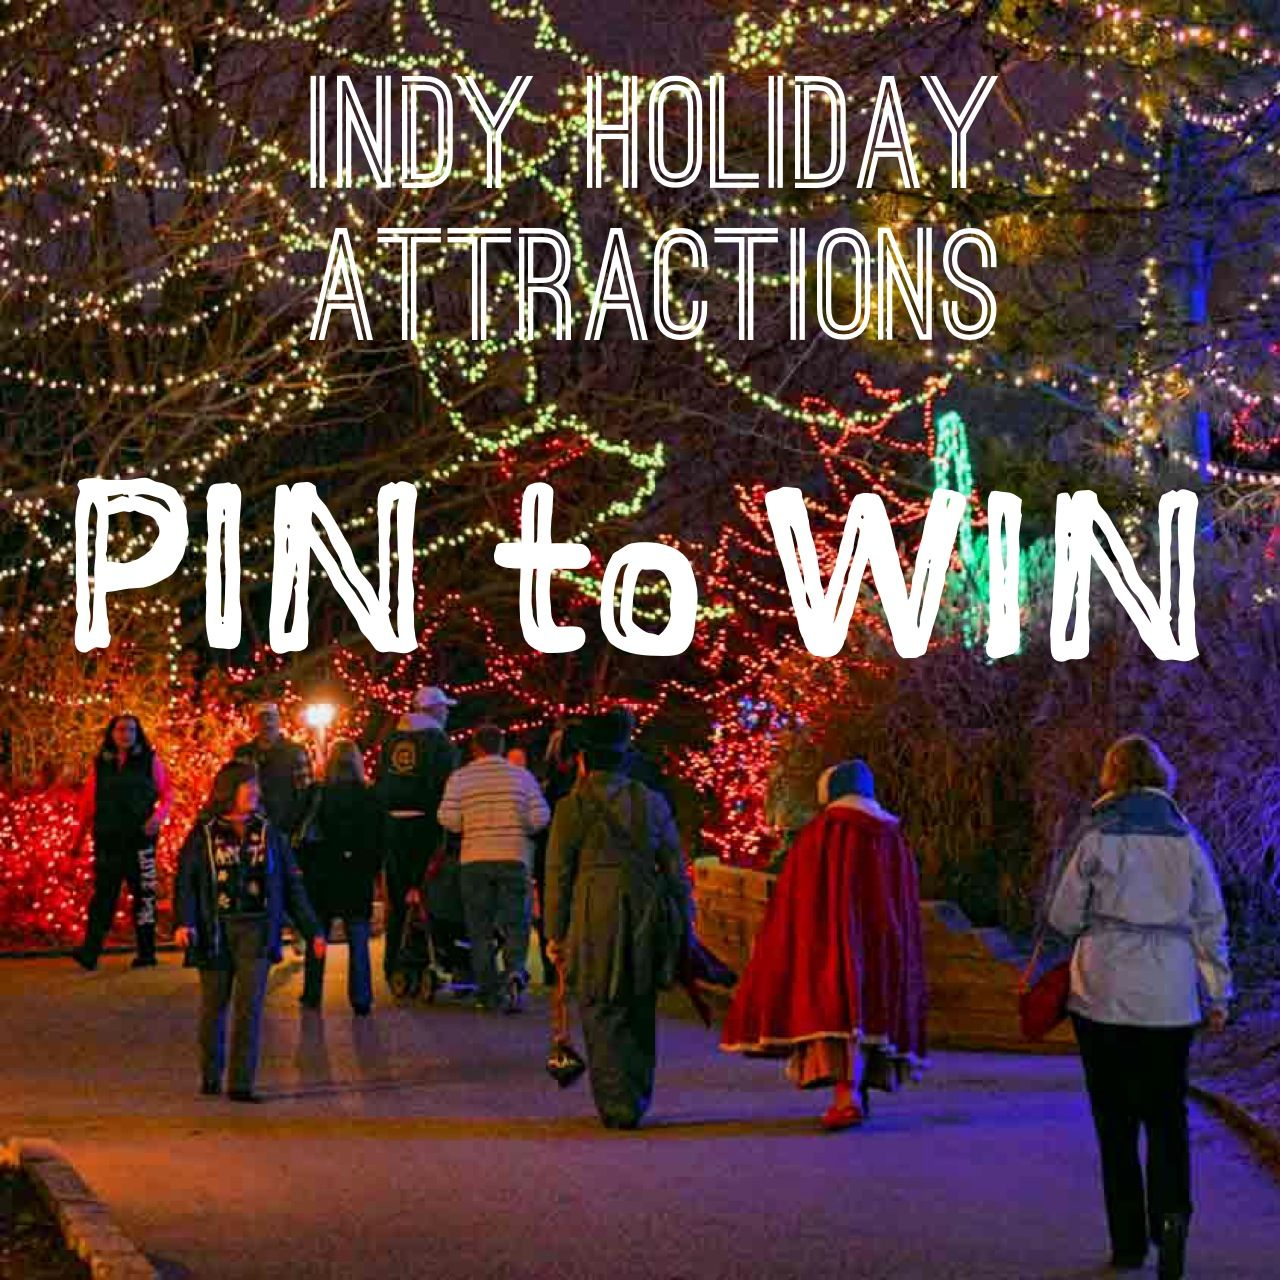 Indy Holiday Attractions Repin Our Guide To Indy Holiday Attractions By Thursday December 11 To Enter To Win Four Tick Indianapolis Holiday Indianapolis Zoo